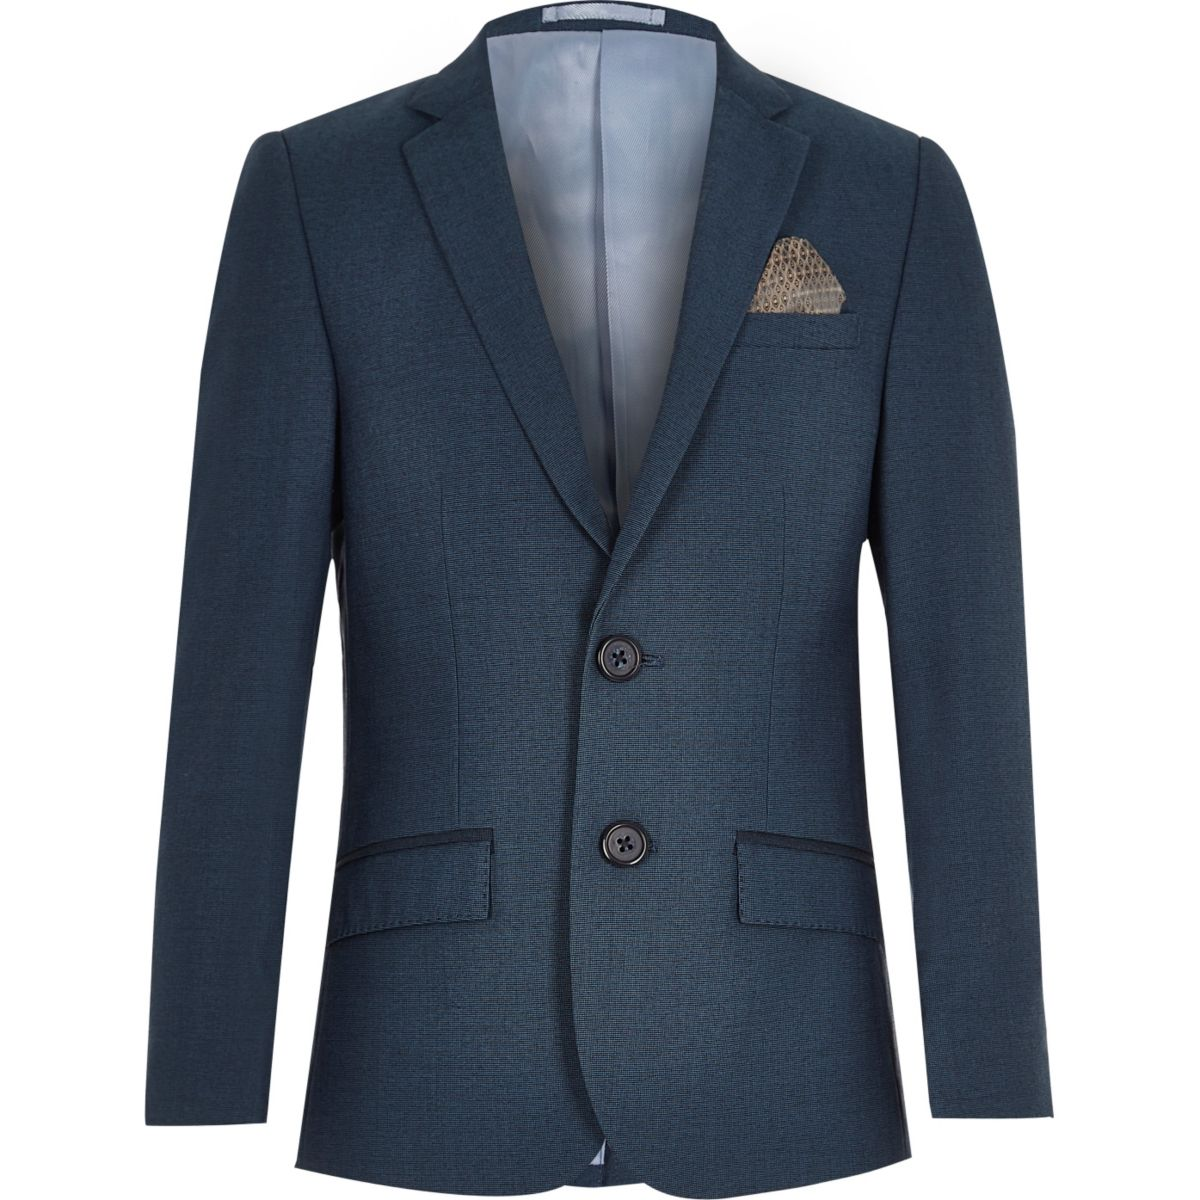 Boys petrol blue suit blazer jacket